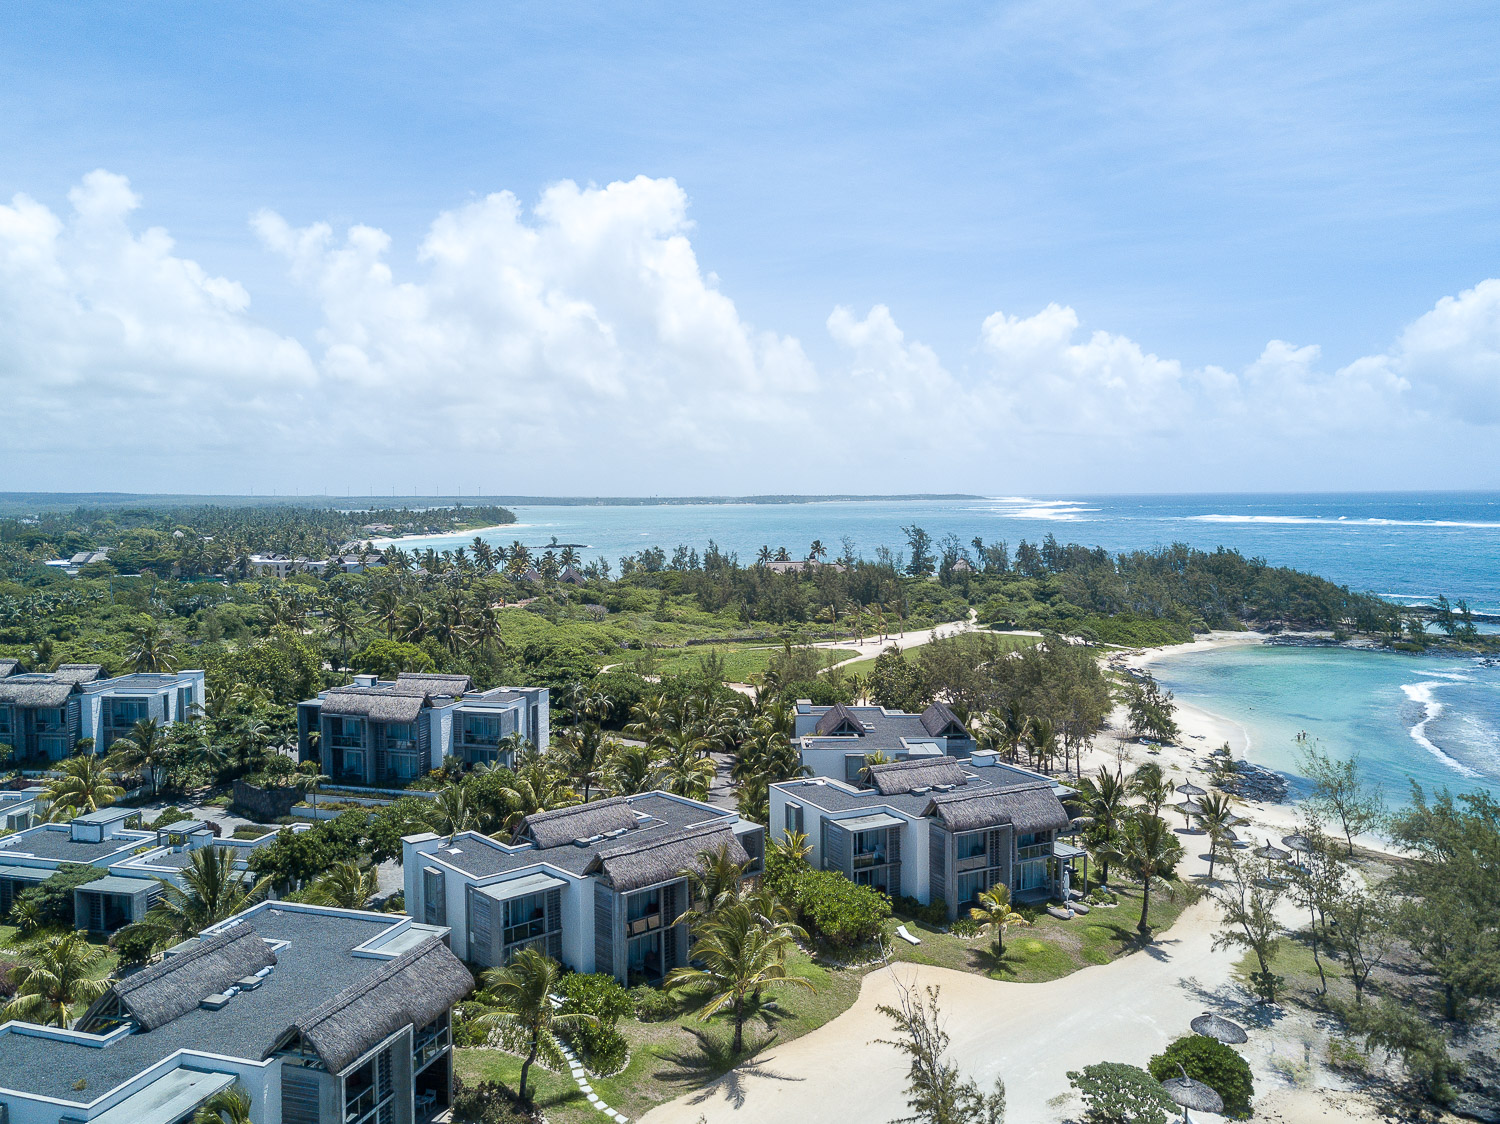 Hotel Long Beach Golf Spa Resort Mauritius